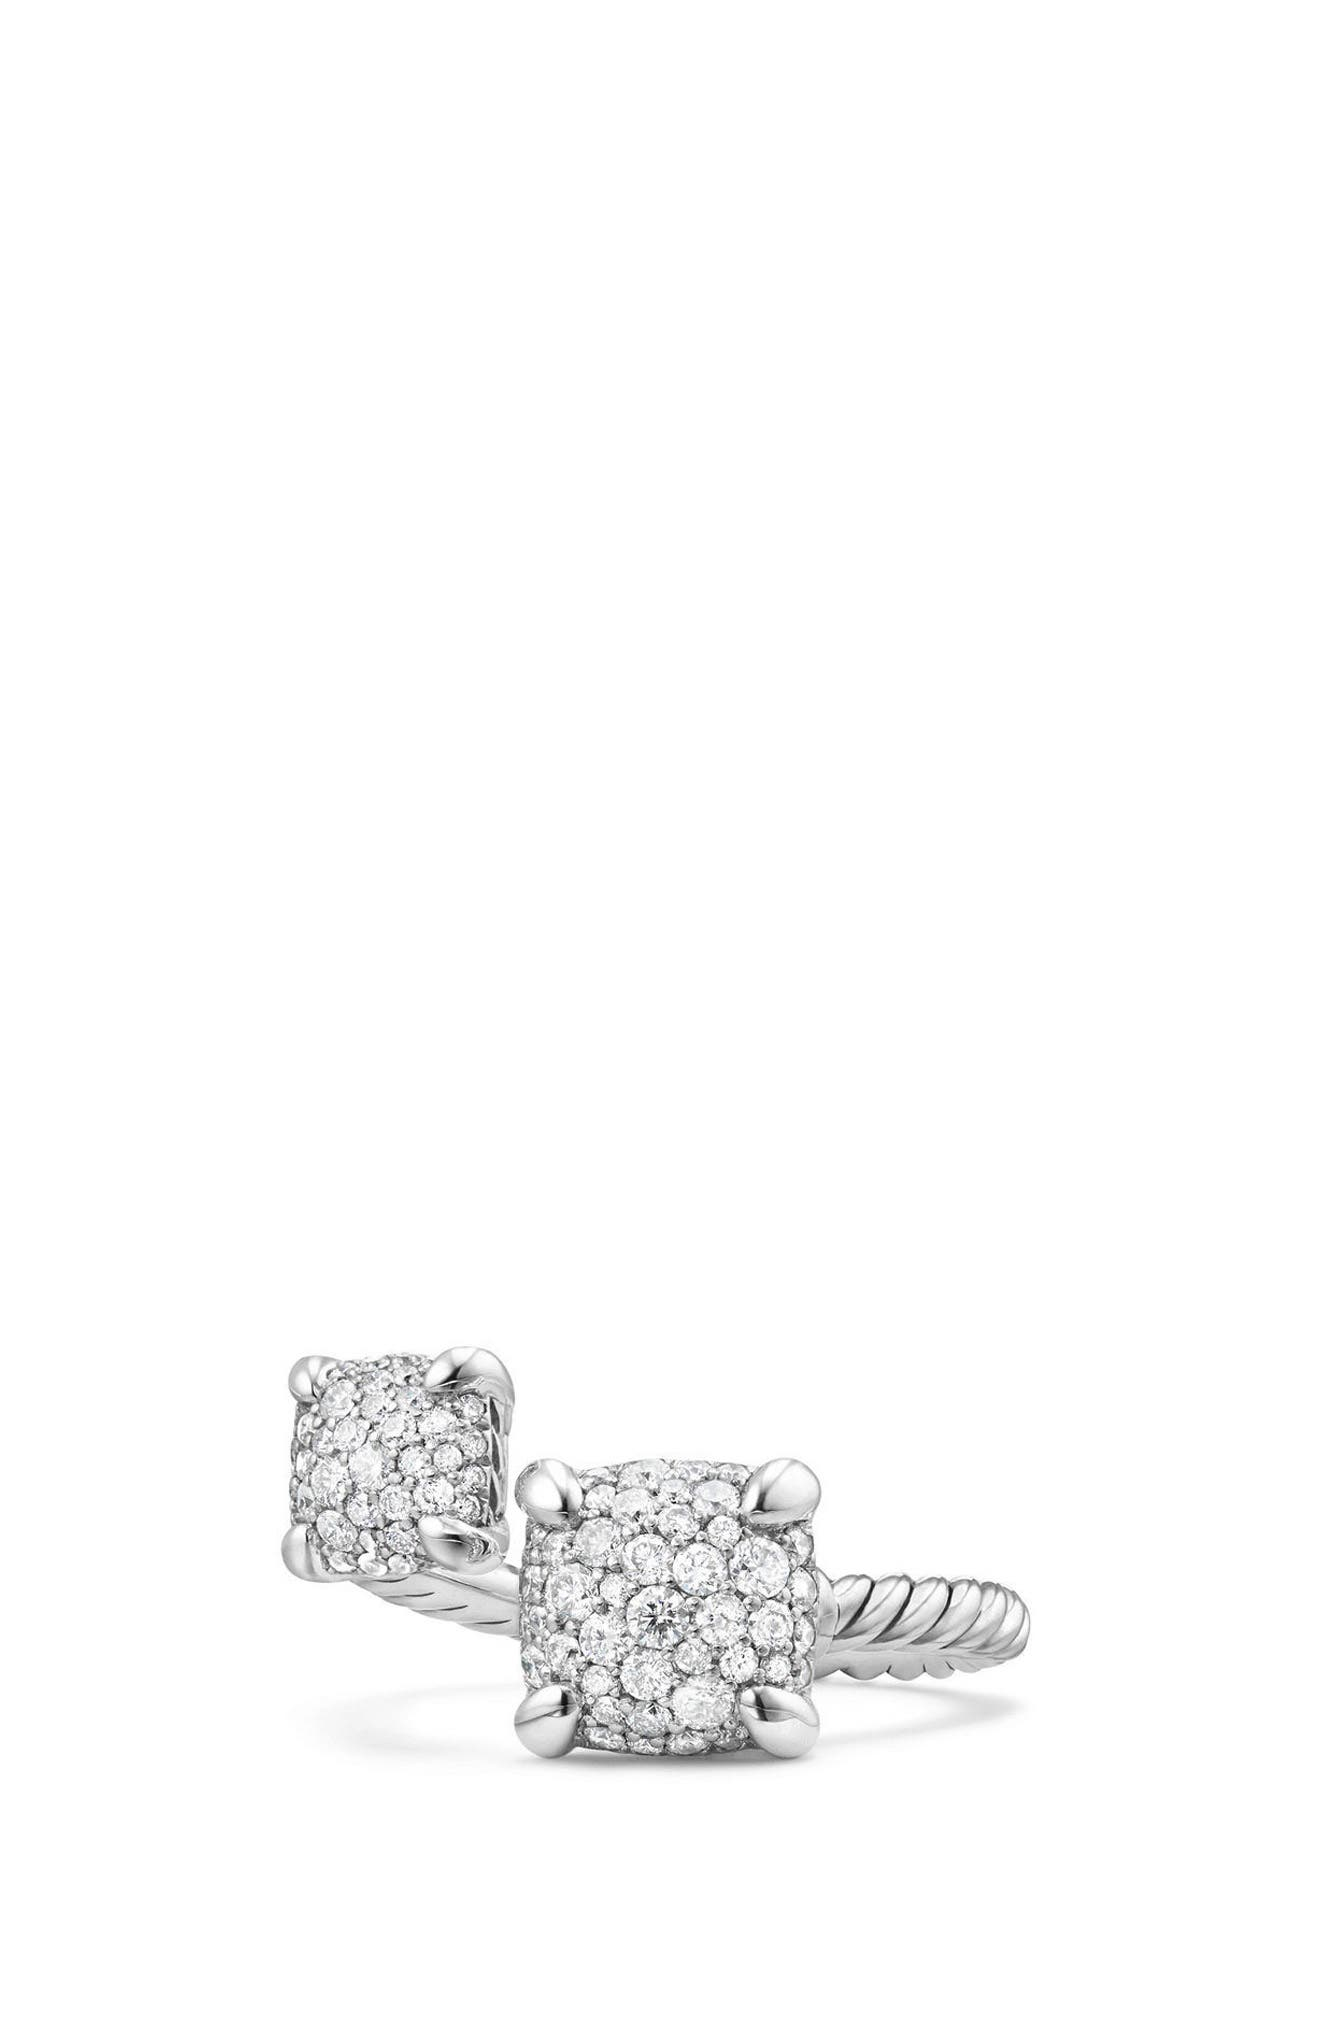 Main Image - David Yurman Châtelaine Bypass Ring with Diamonds